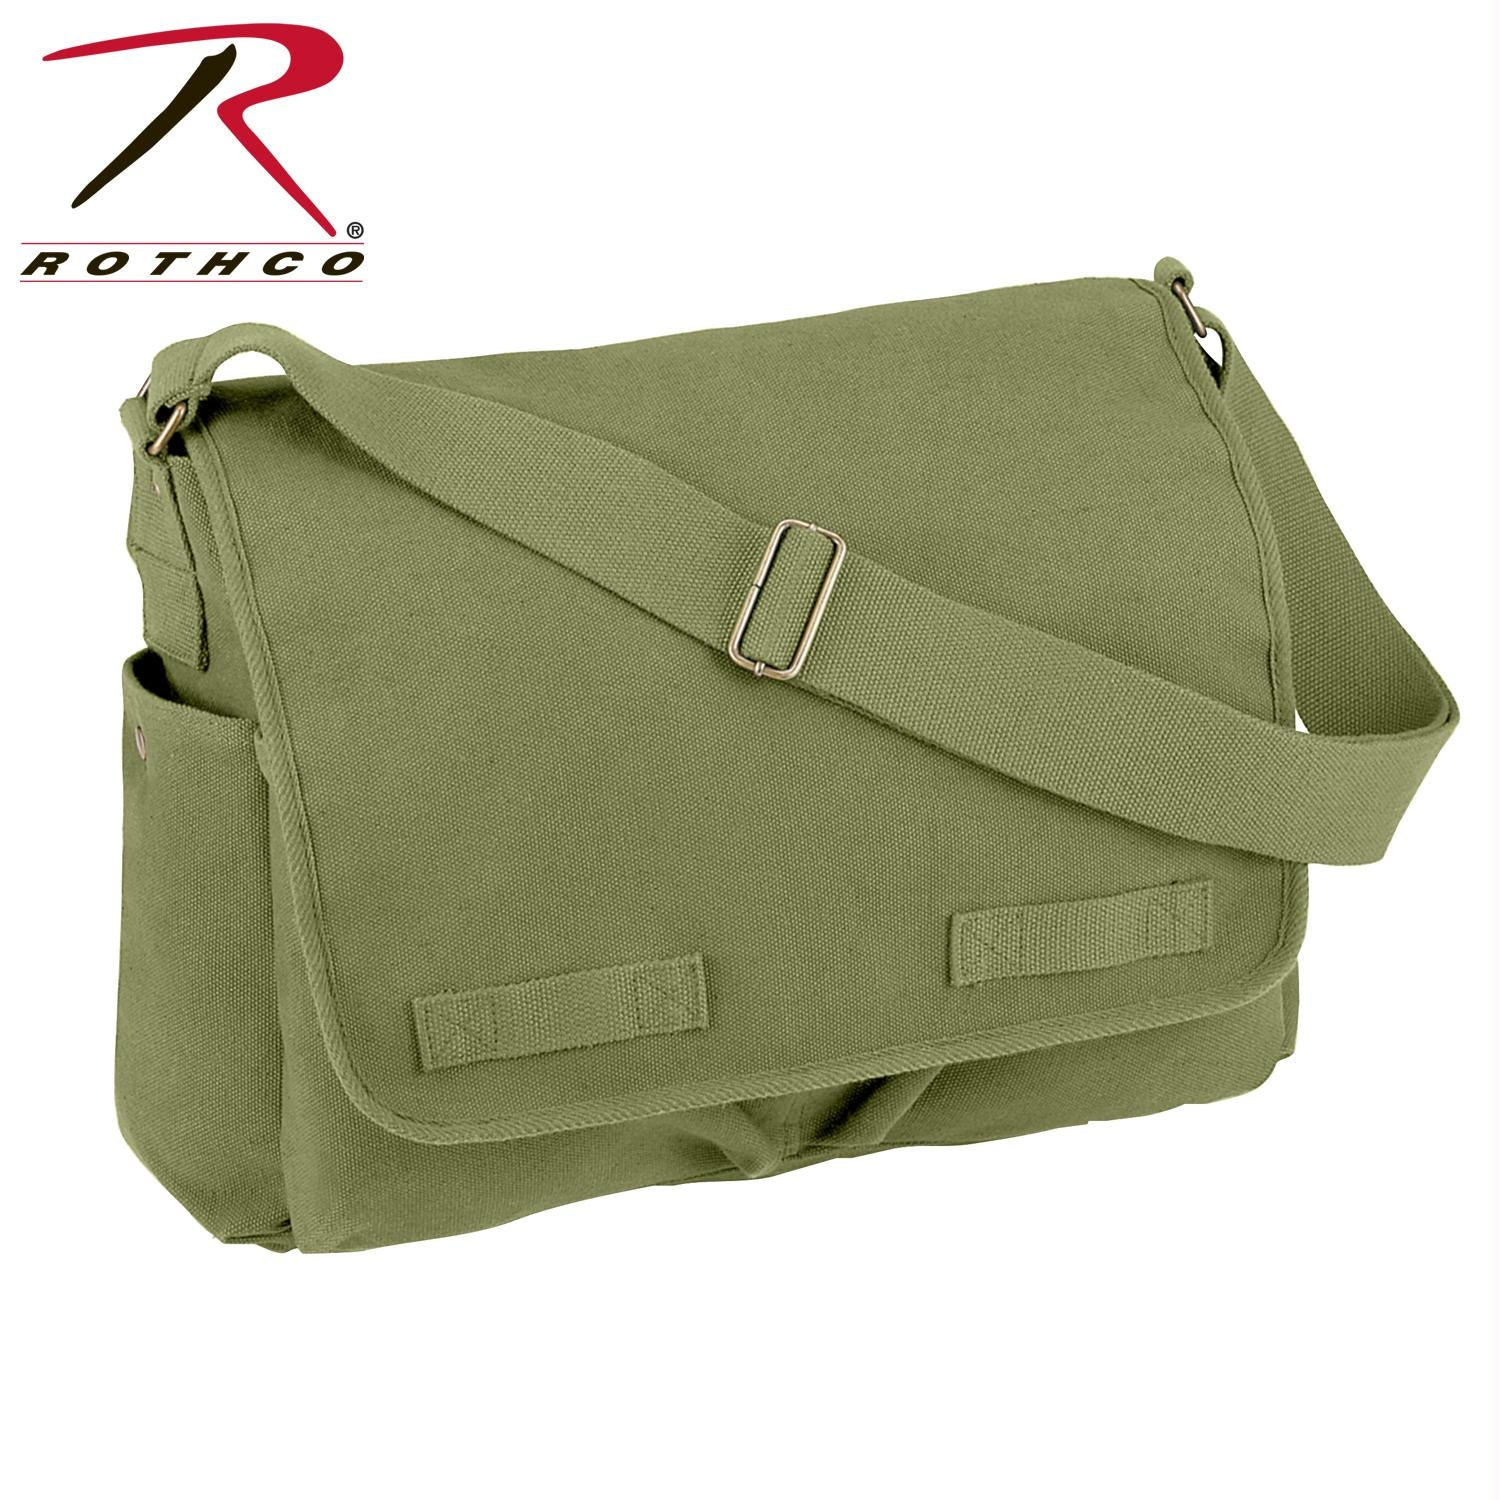 Rothco Vintage Unwashed Canvas Messenger Bag - Olive Drab